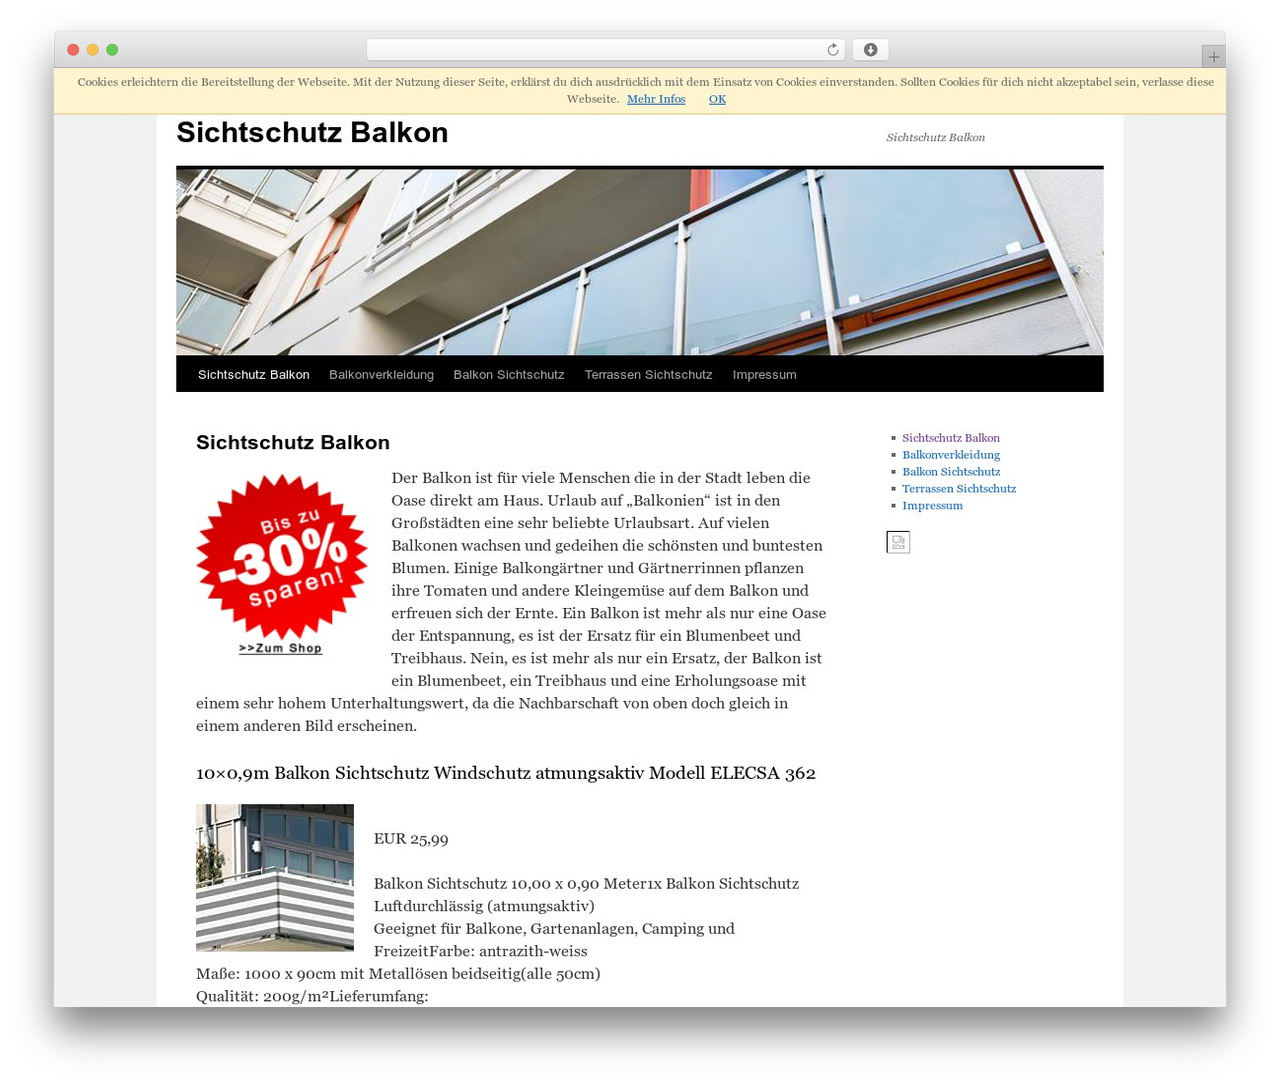 Sichtschutzzaun Balkon Twenty Ten Template Wordpress Free By The Wordpress Team